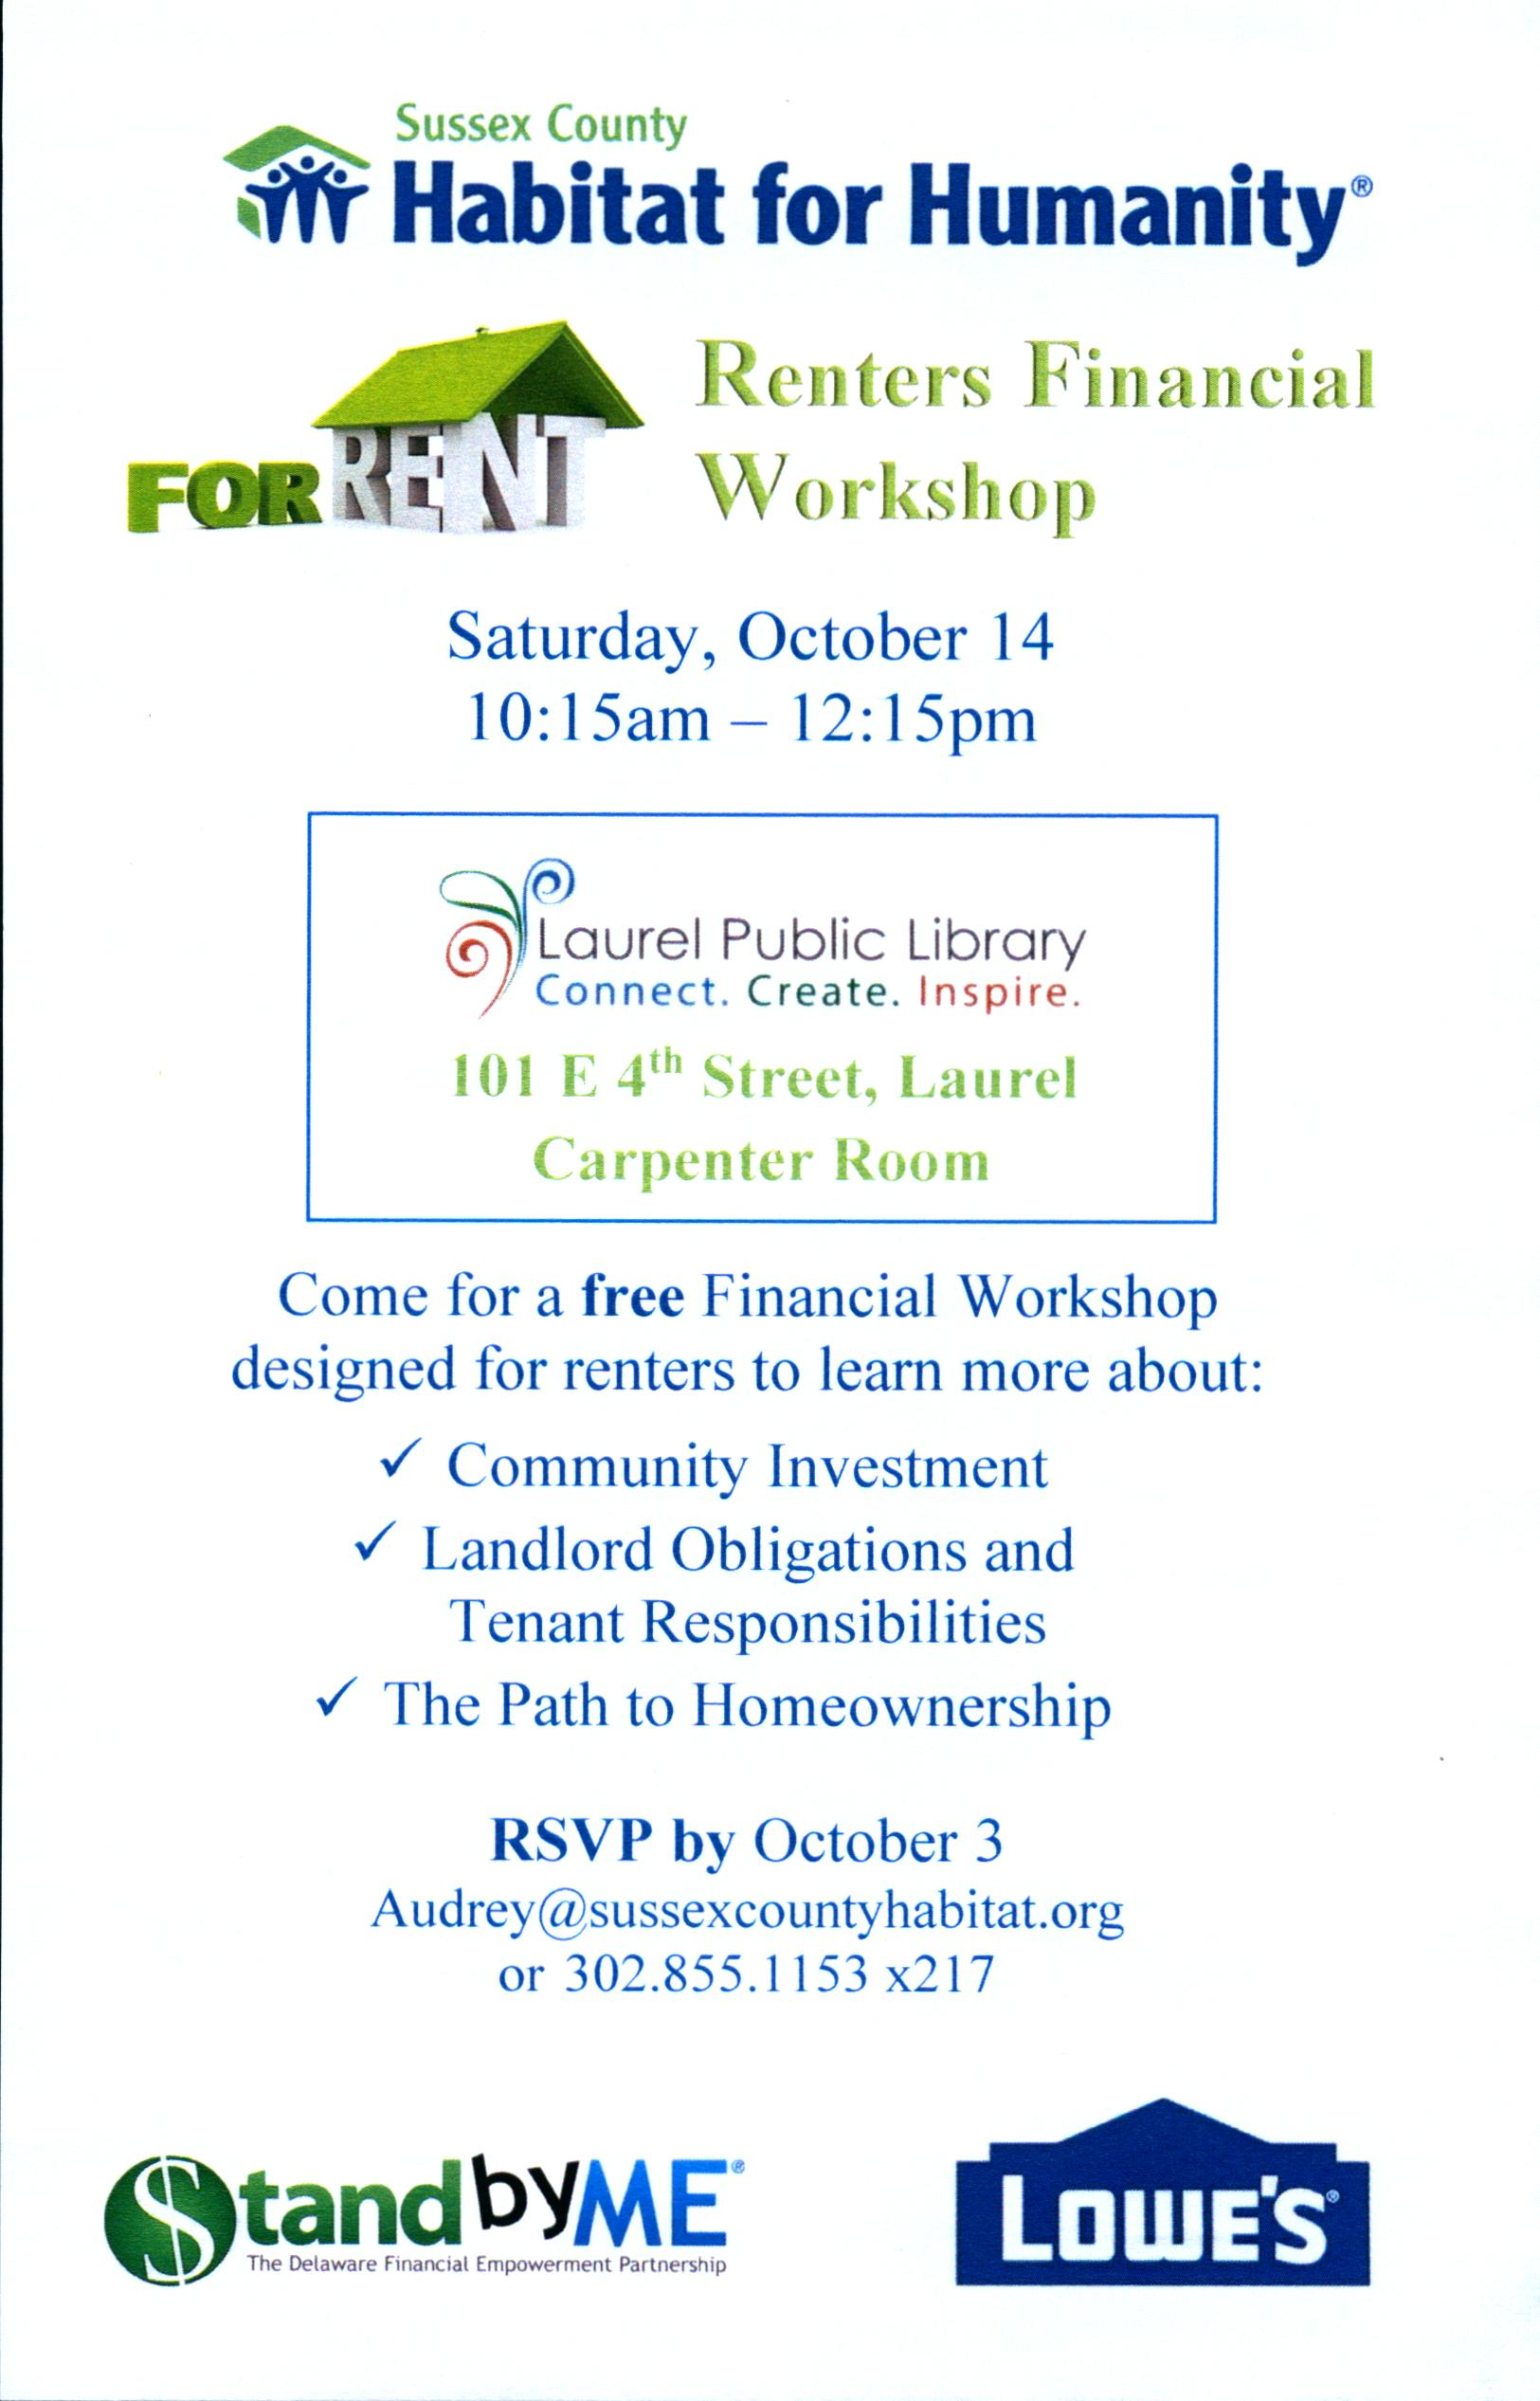 Renters Financial Workshop